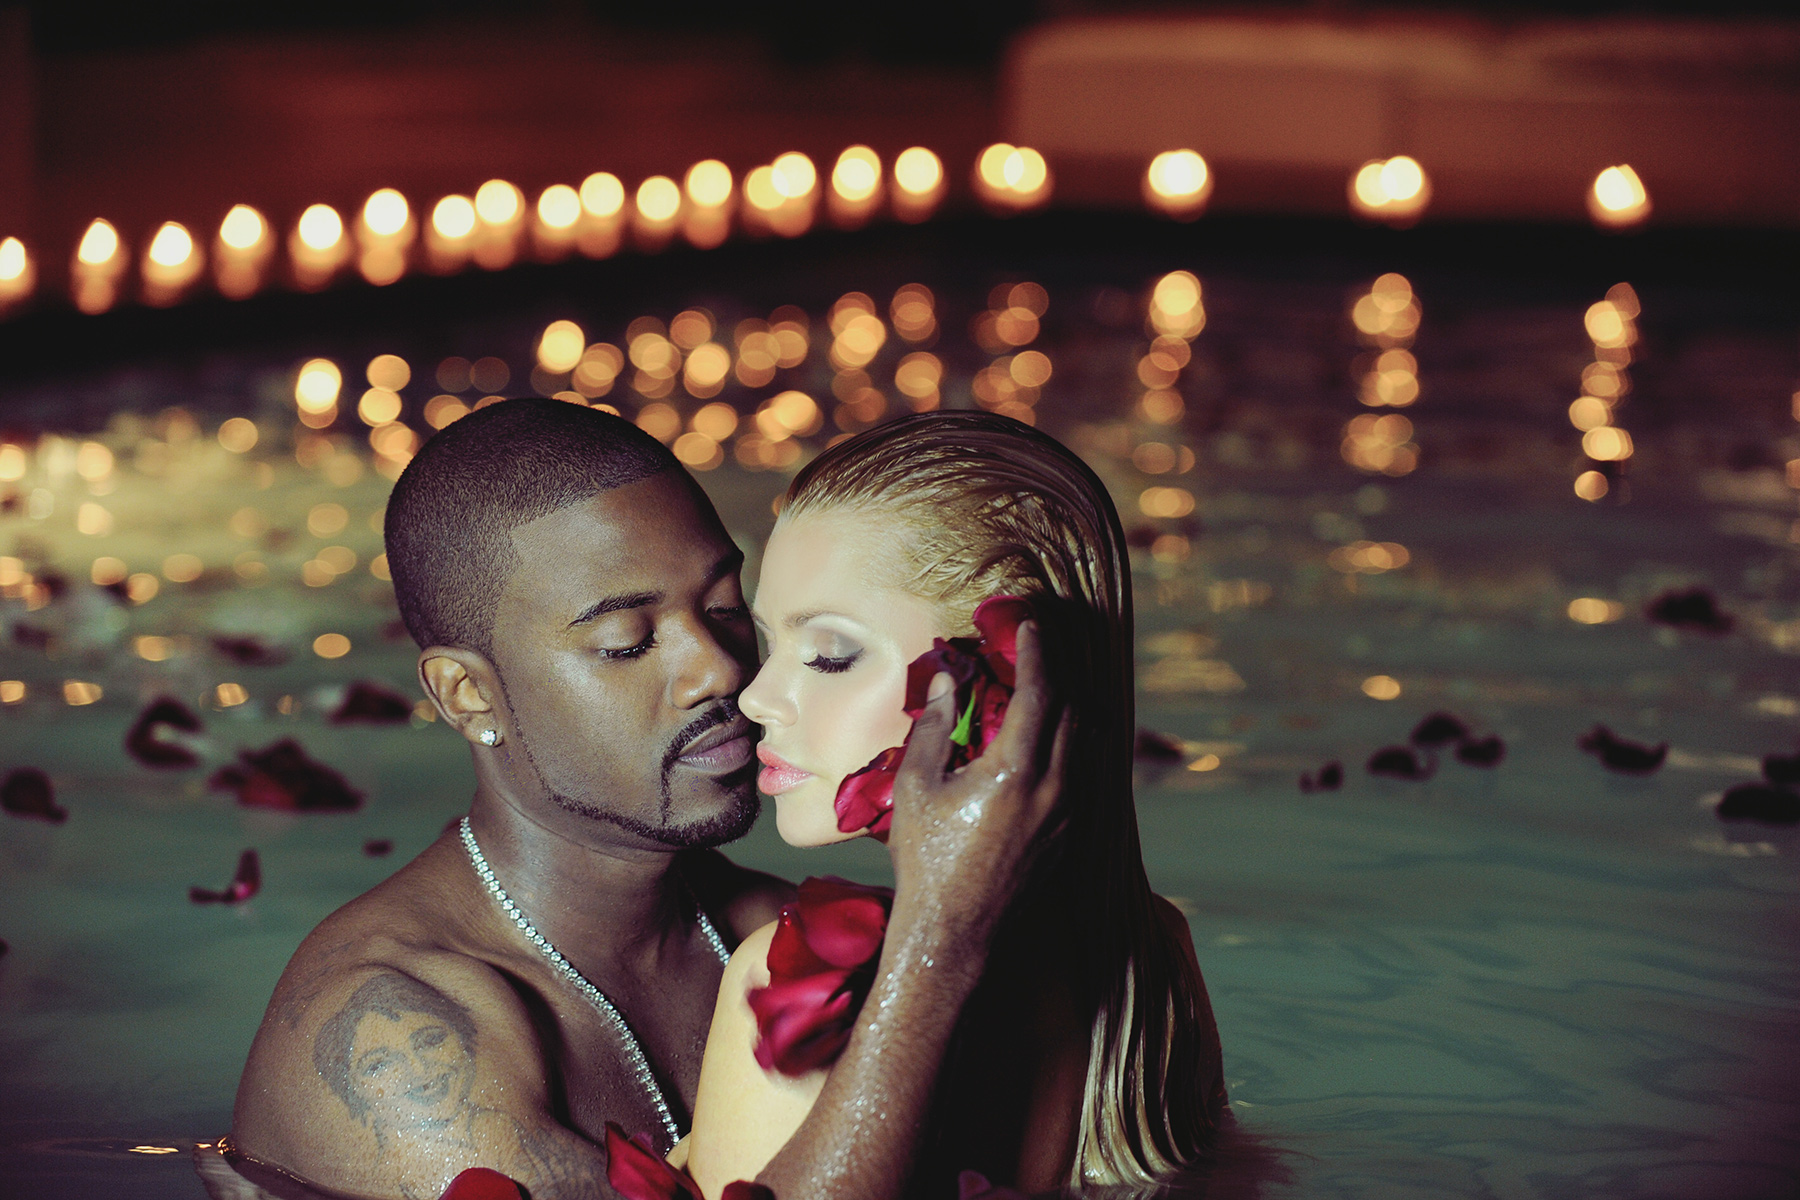 Ray J & Sophie Monk. Photo © Jared Milgrim